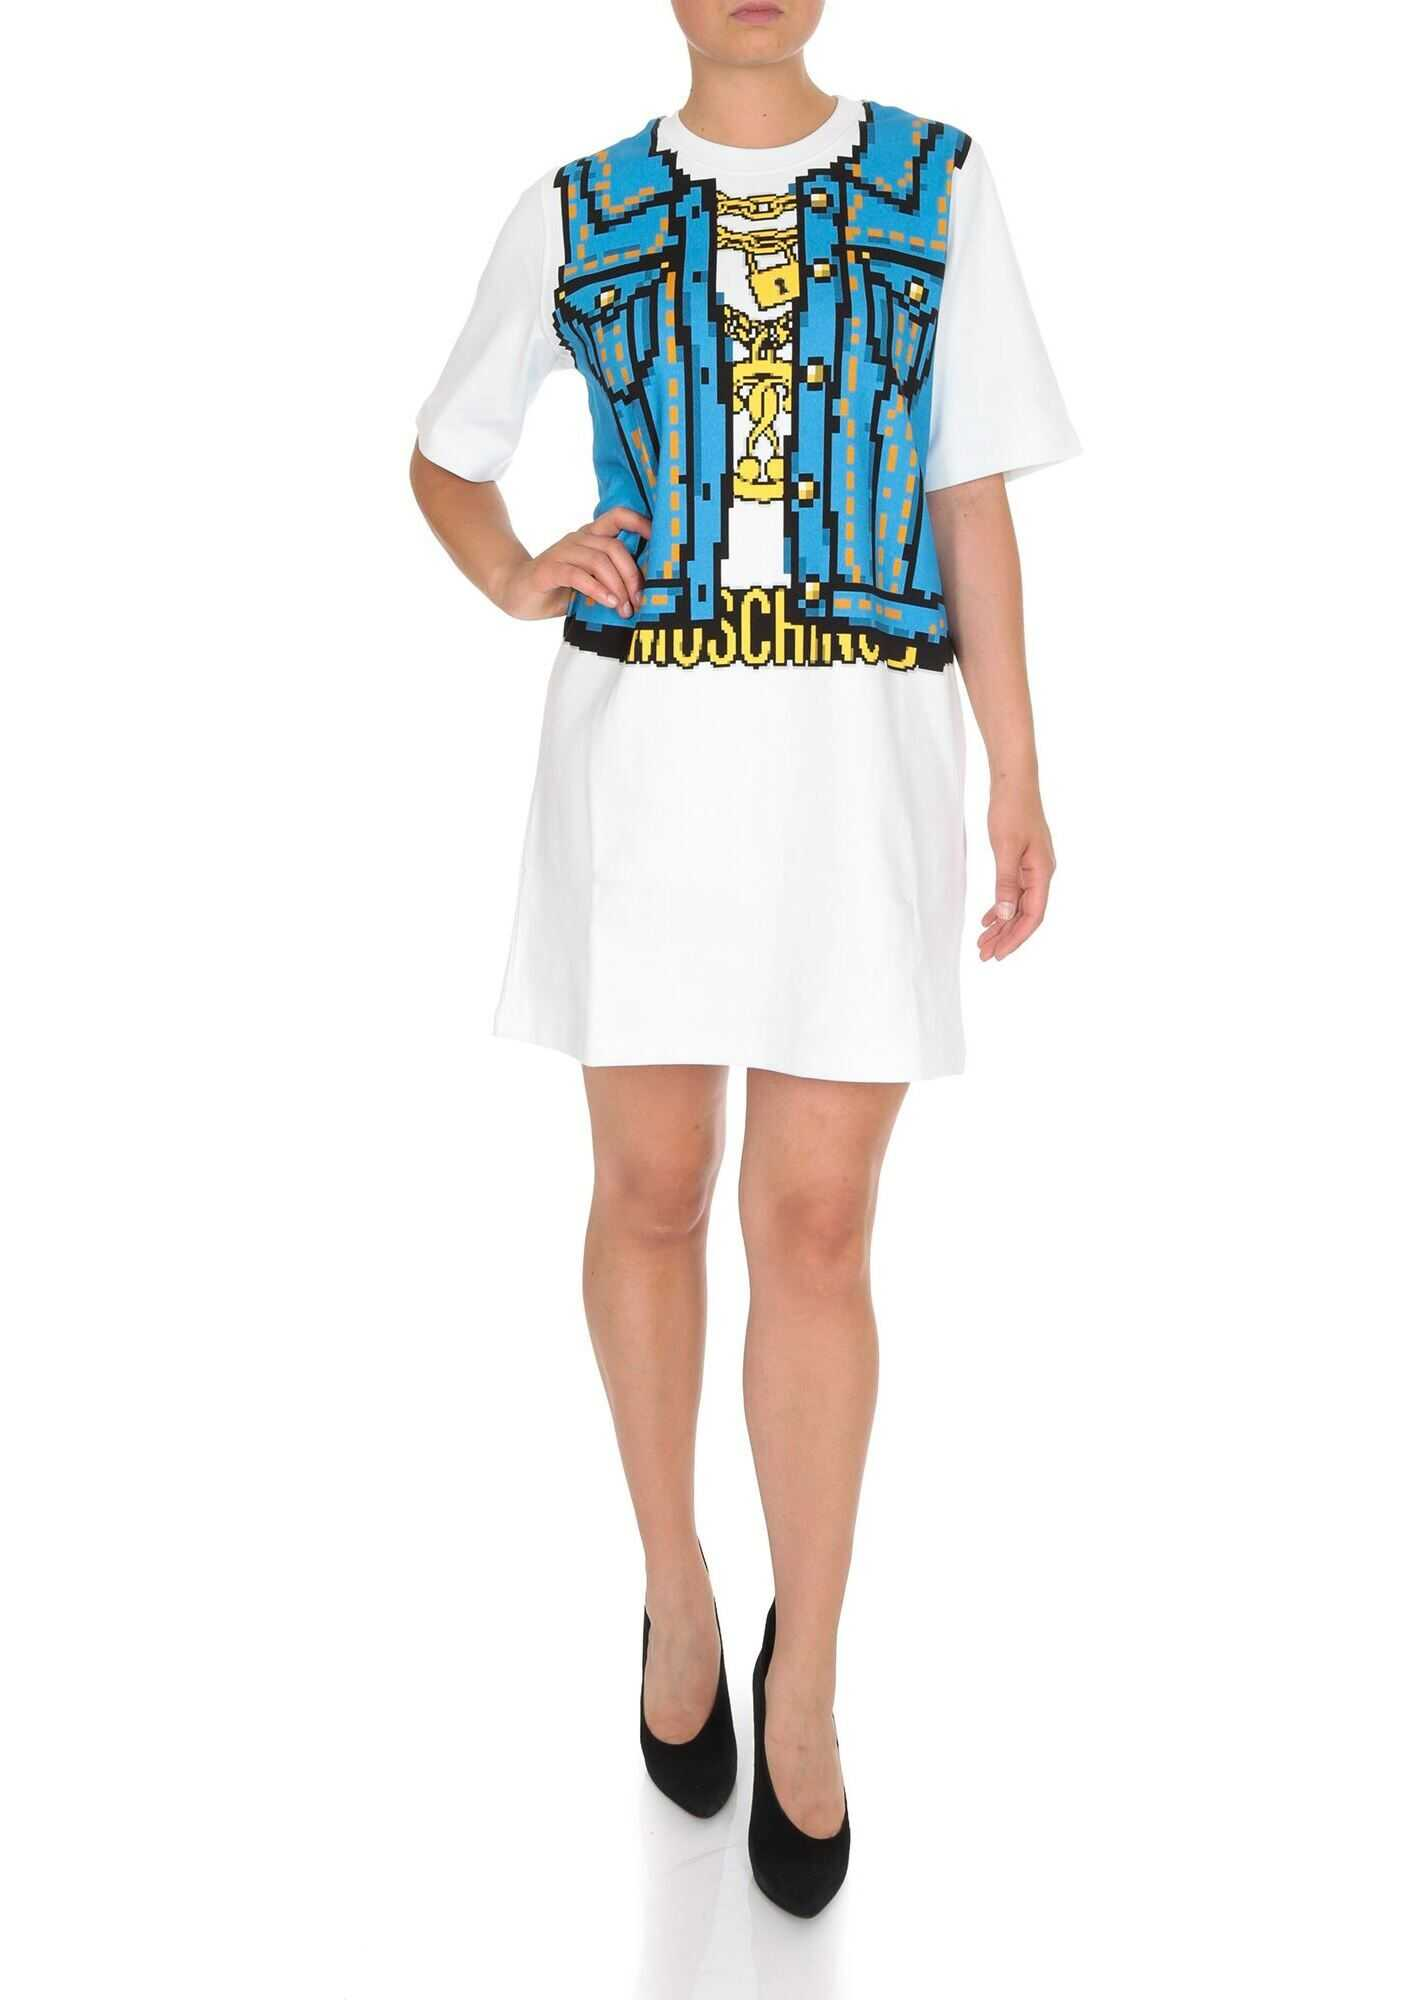 Moschino Moschino Capsule Collection Pixel Dress In White White